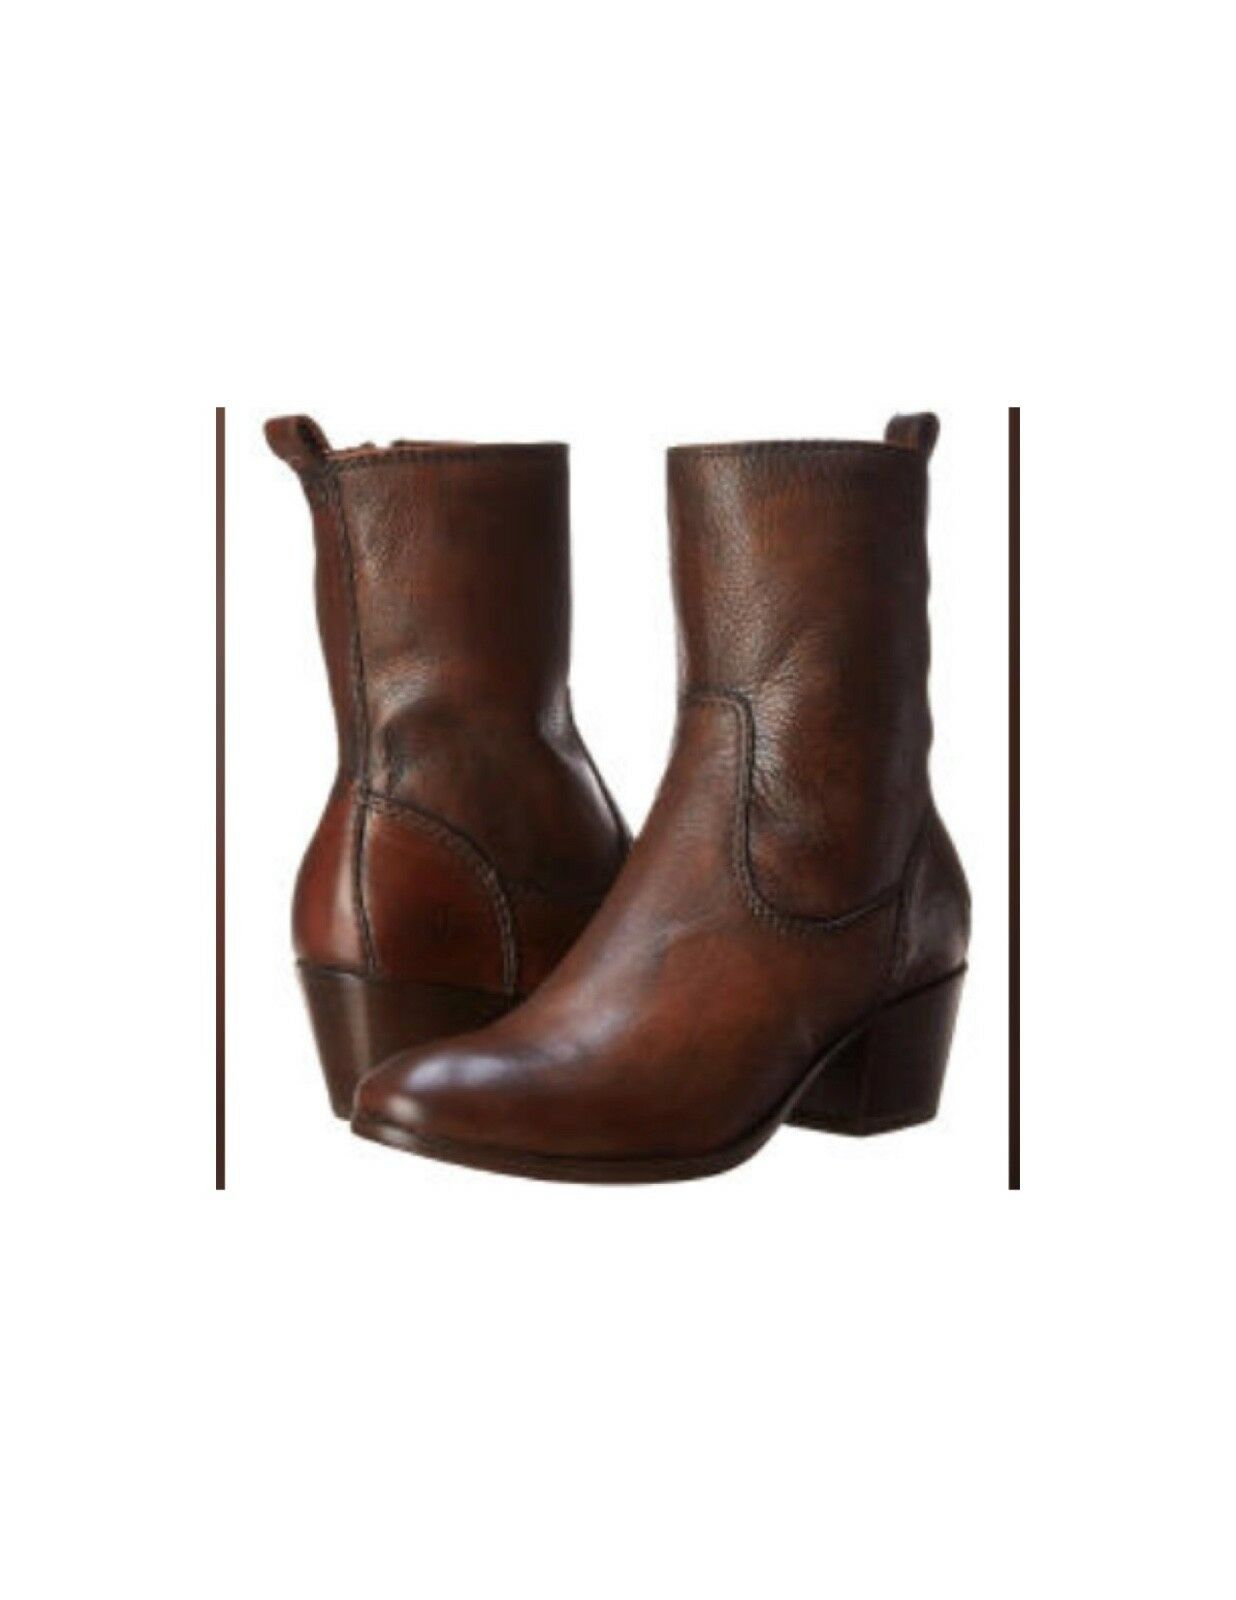 Frye Boots Courtney Short Whiskey Color Size 9.5 SOLD OUT IN STORES